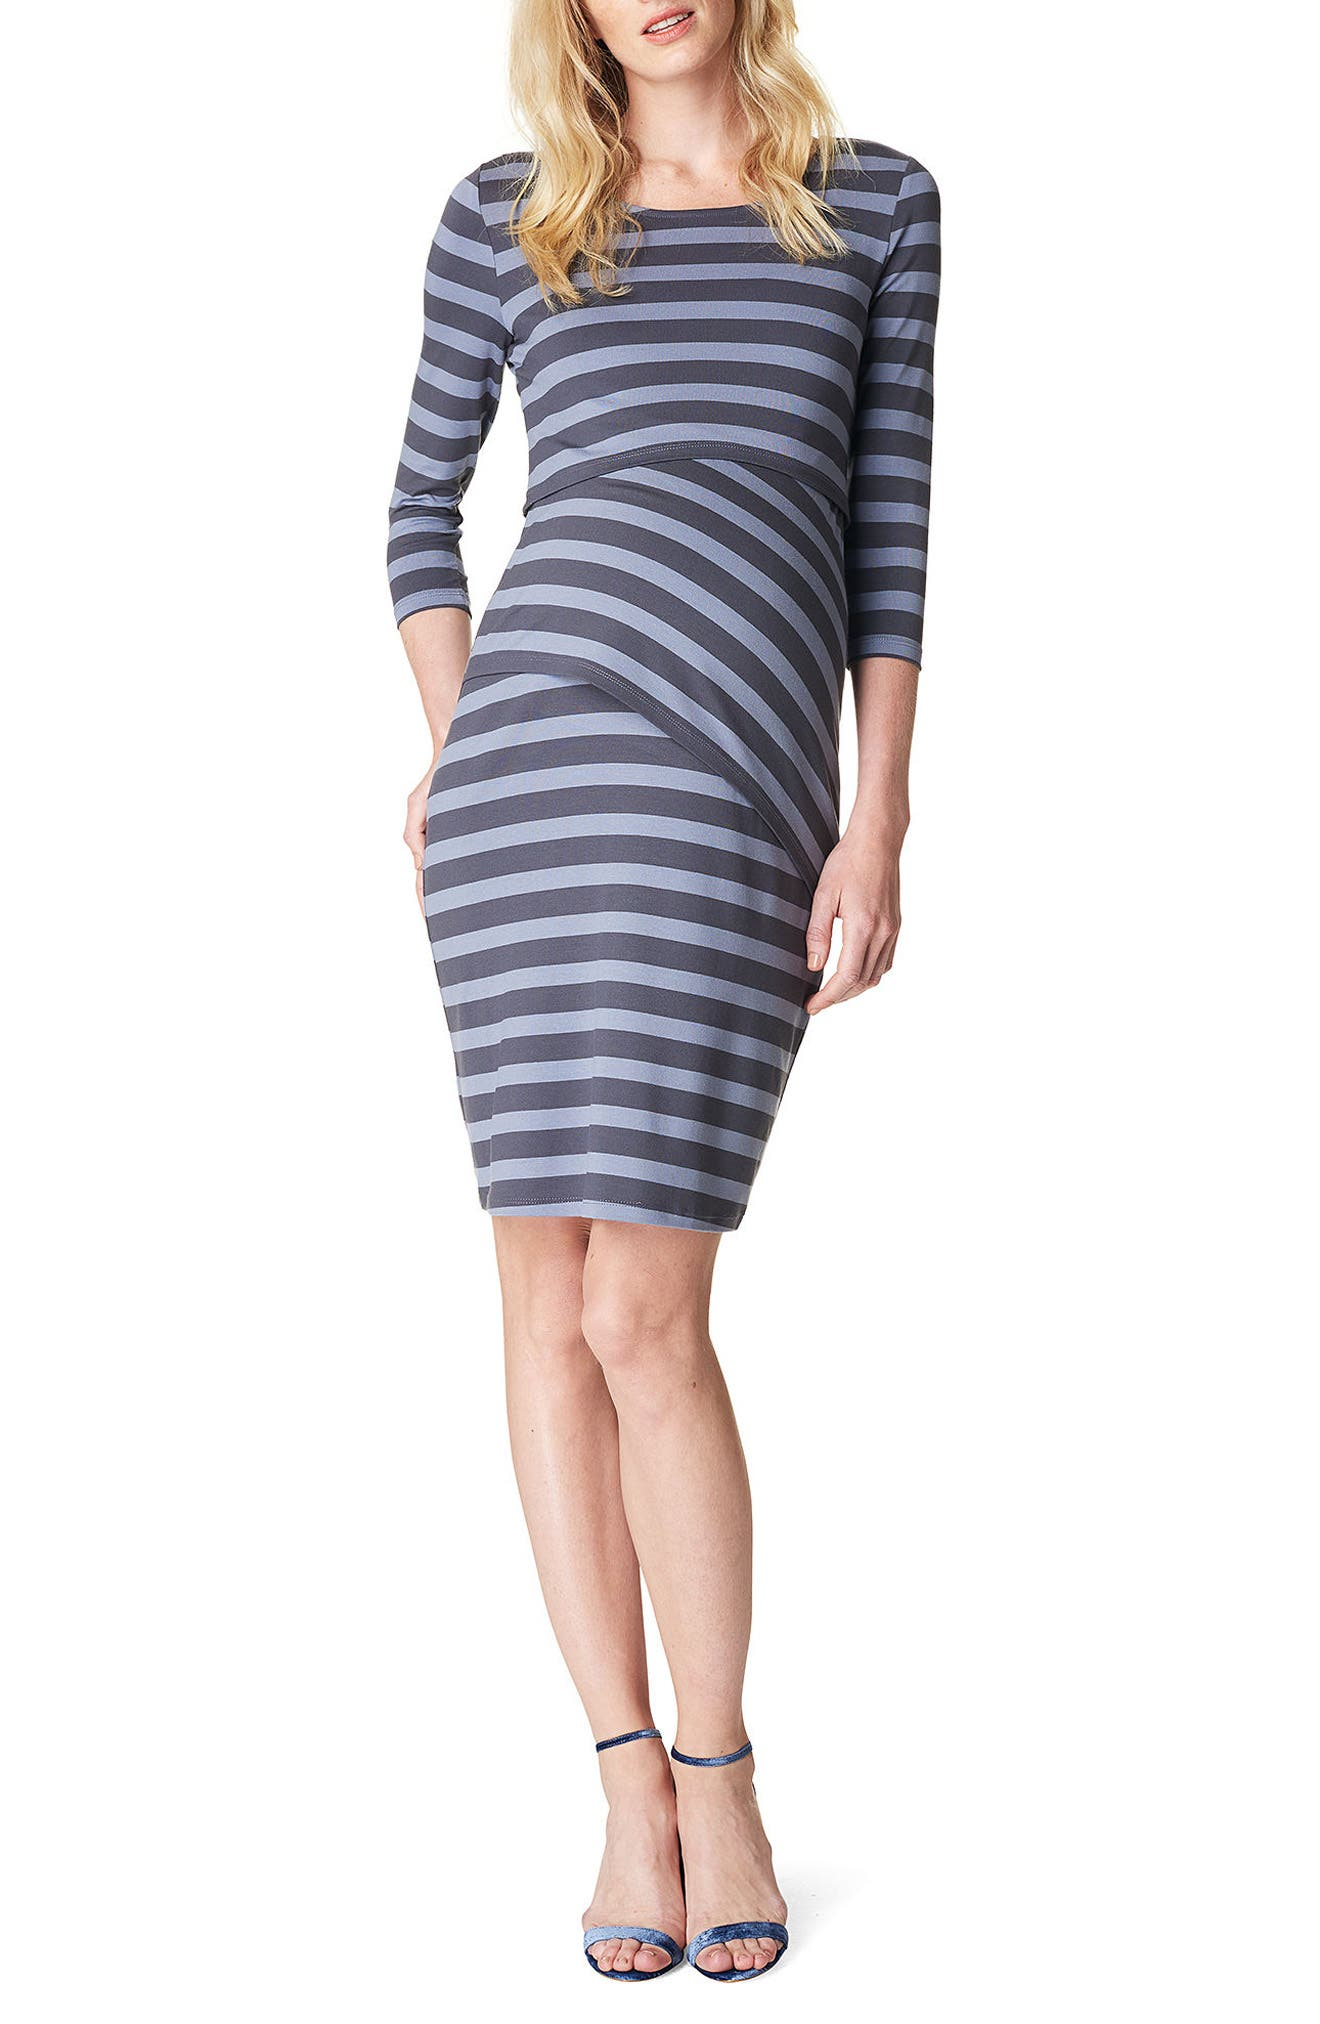 Aaike Maternity/Nursing Sheath Dress,                         Main,                         color, Blue Strip